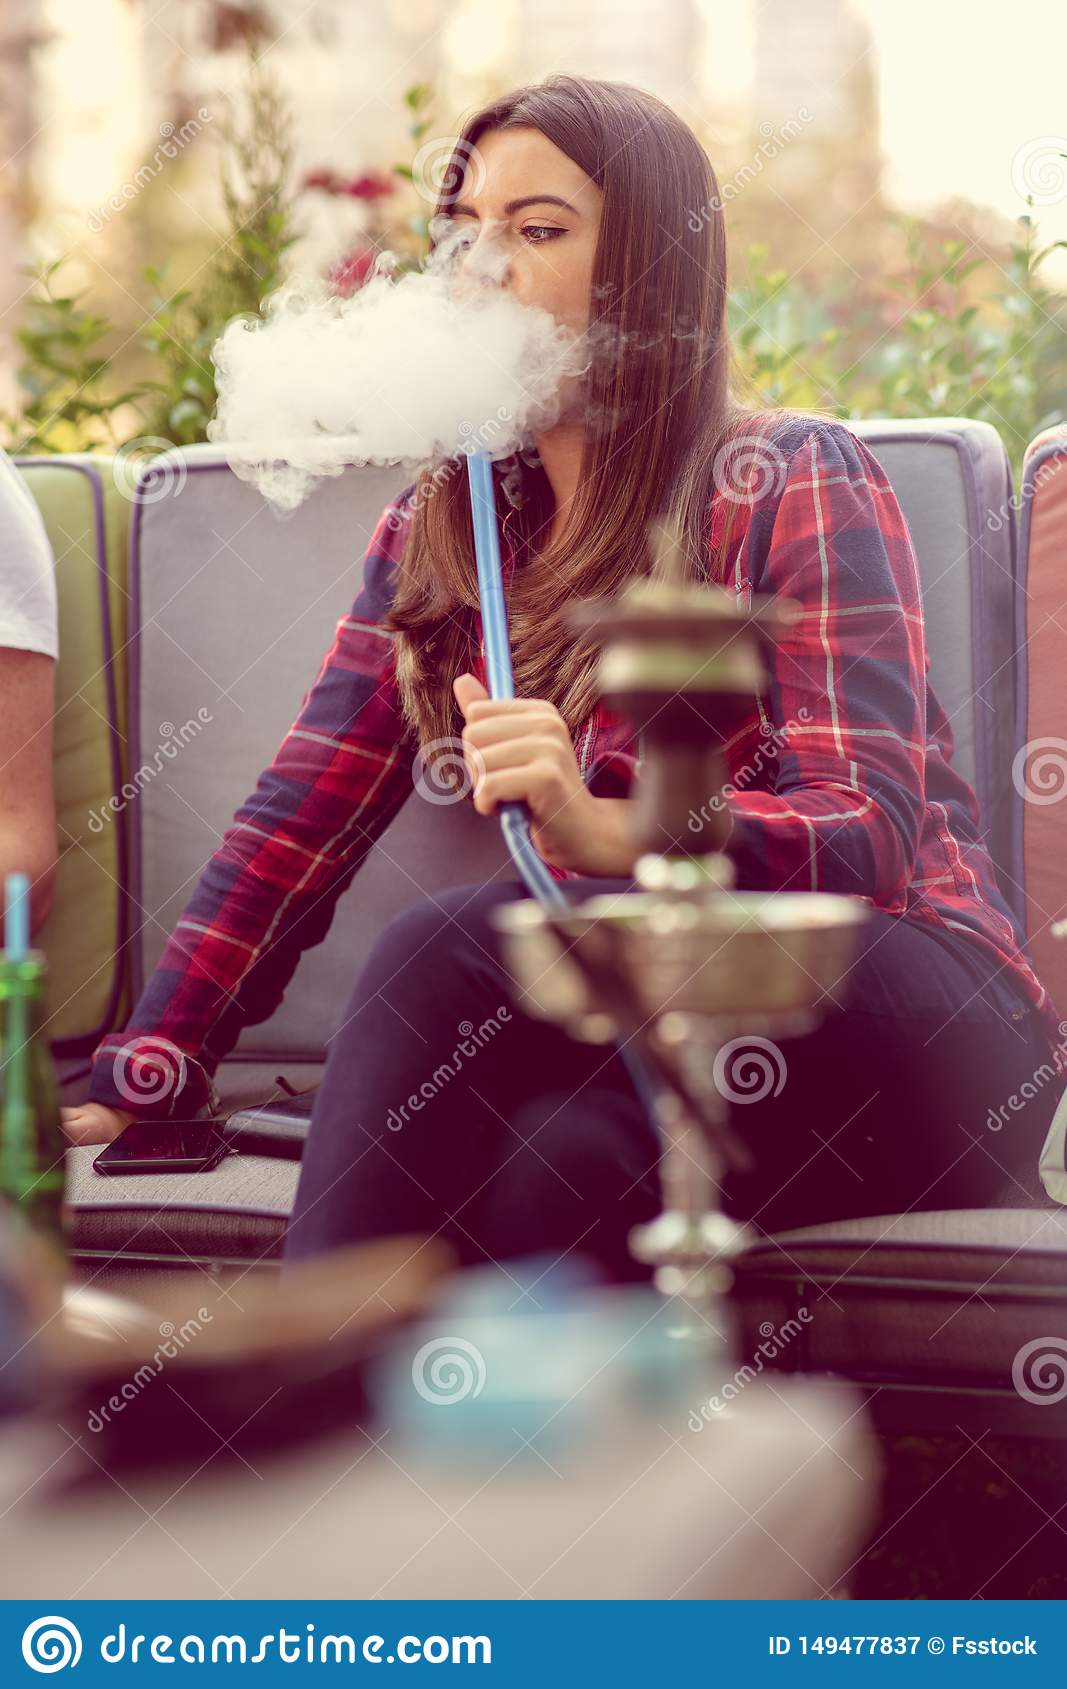 Young woman smoking a hookah outdoors. The pleasure of smoking. City in background